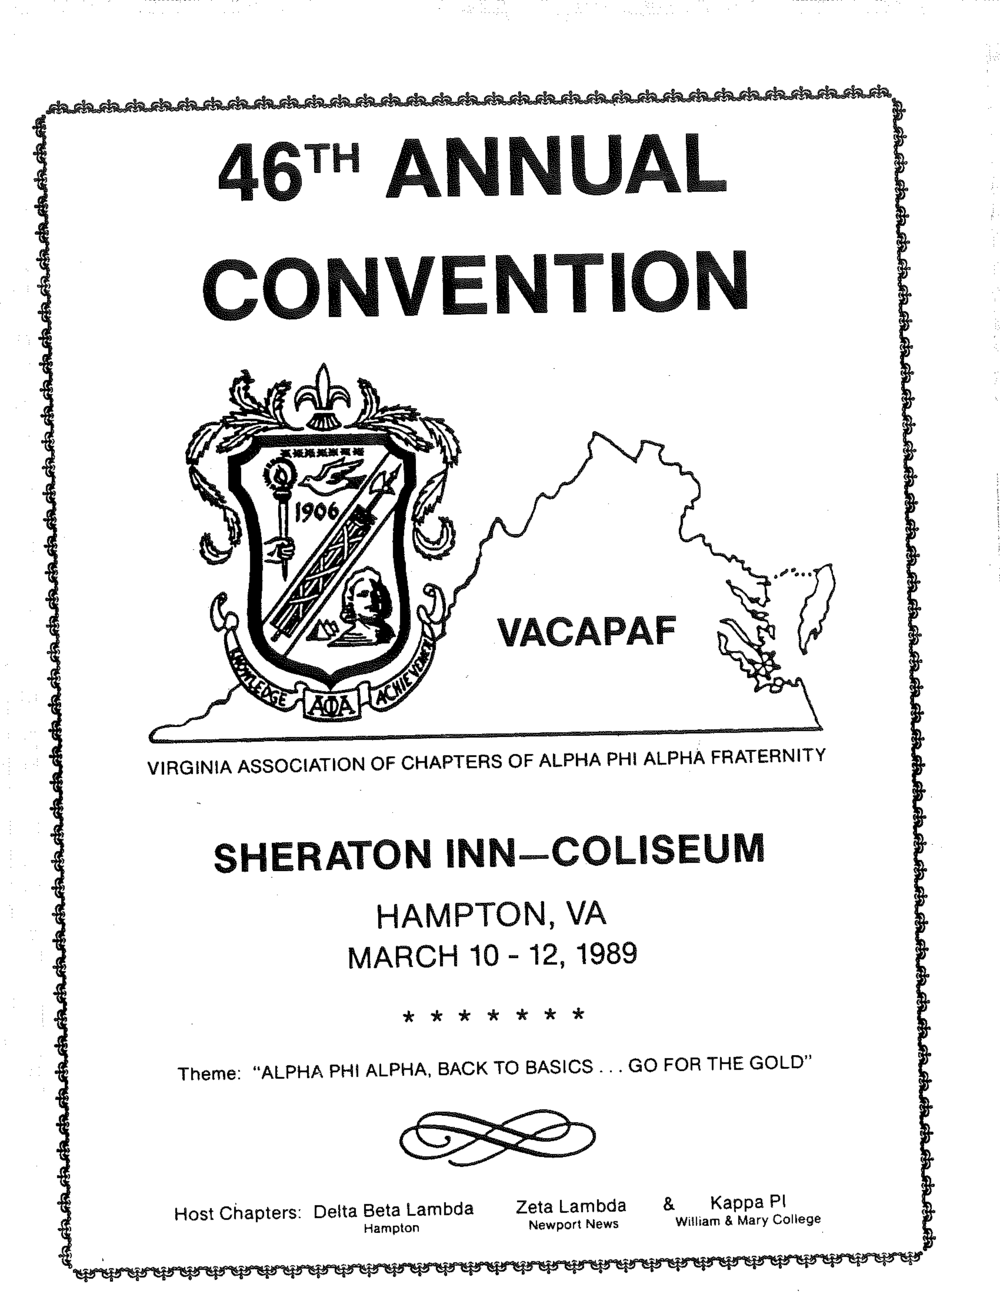 Zeta Lambda 1989 - Co Host VACAPAF Convention.png